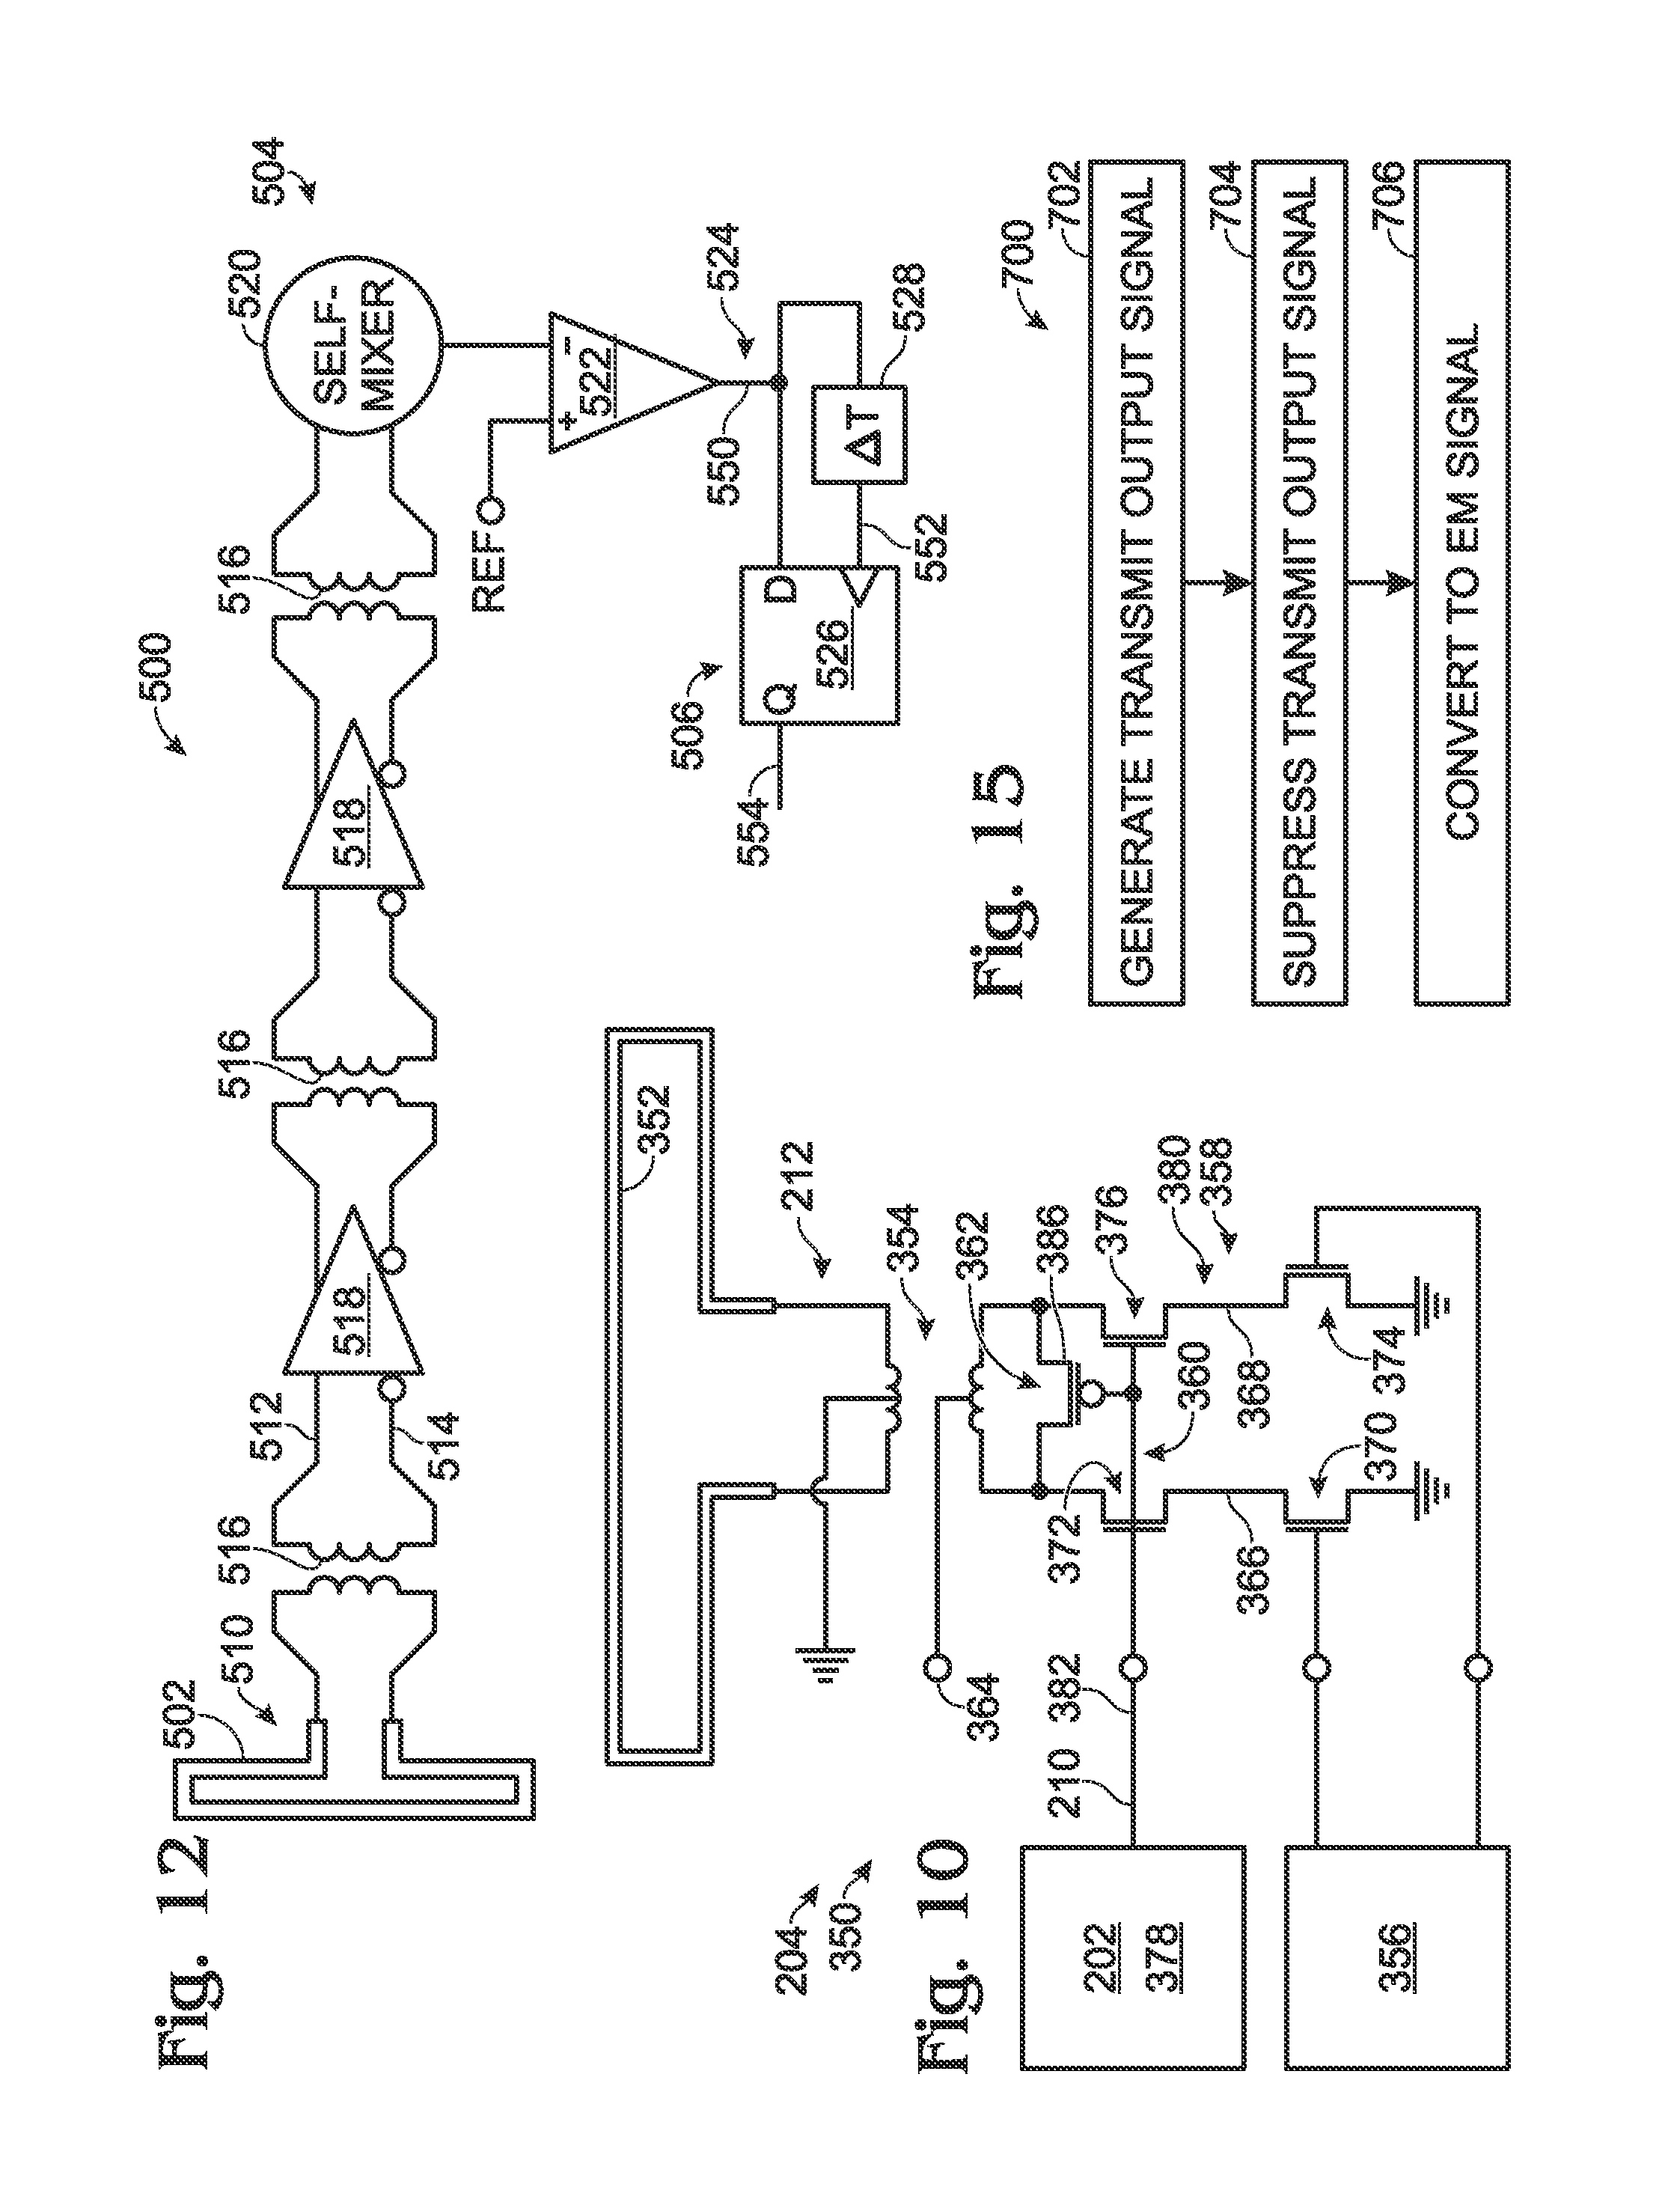 Ehf Circuit Block Diagram Schematics Ac Voltage Measuring By Carrier Measuringandtestcircuit Patent Us8811526 Delta Modulated Low Power Communication Link Tv